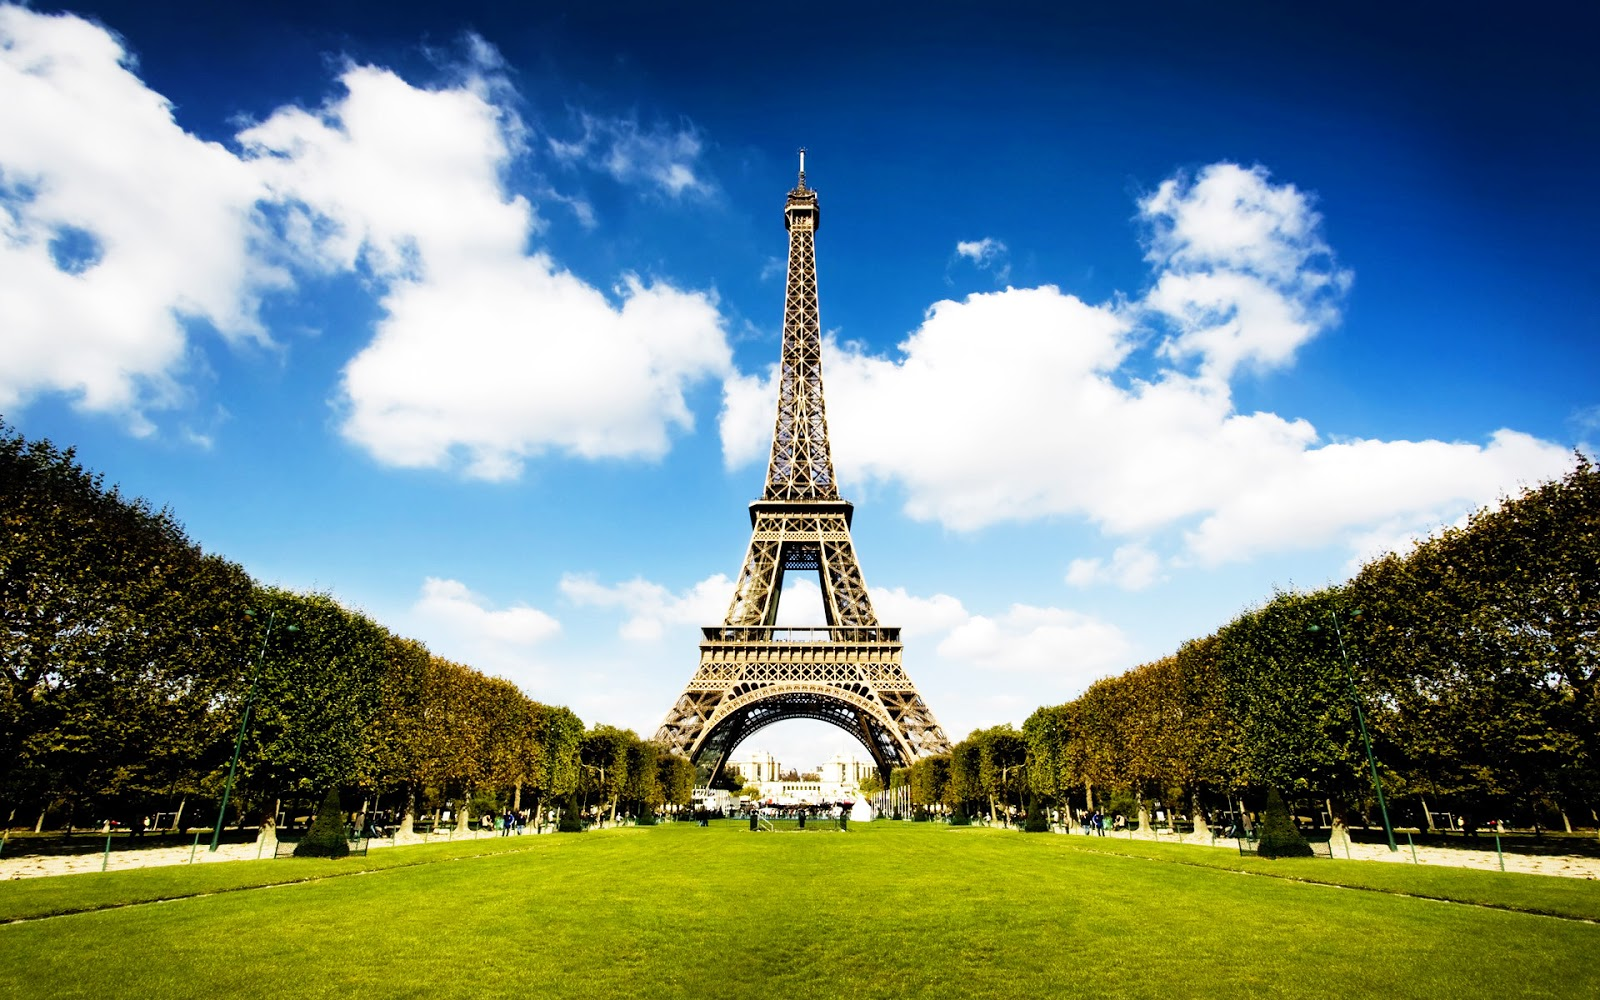 Eiffel tower hd desktop wallpapers desktop wallpapers - Paris eiffel tower desktop wallpaper ...